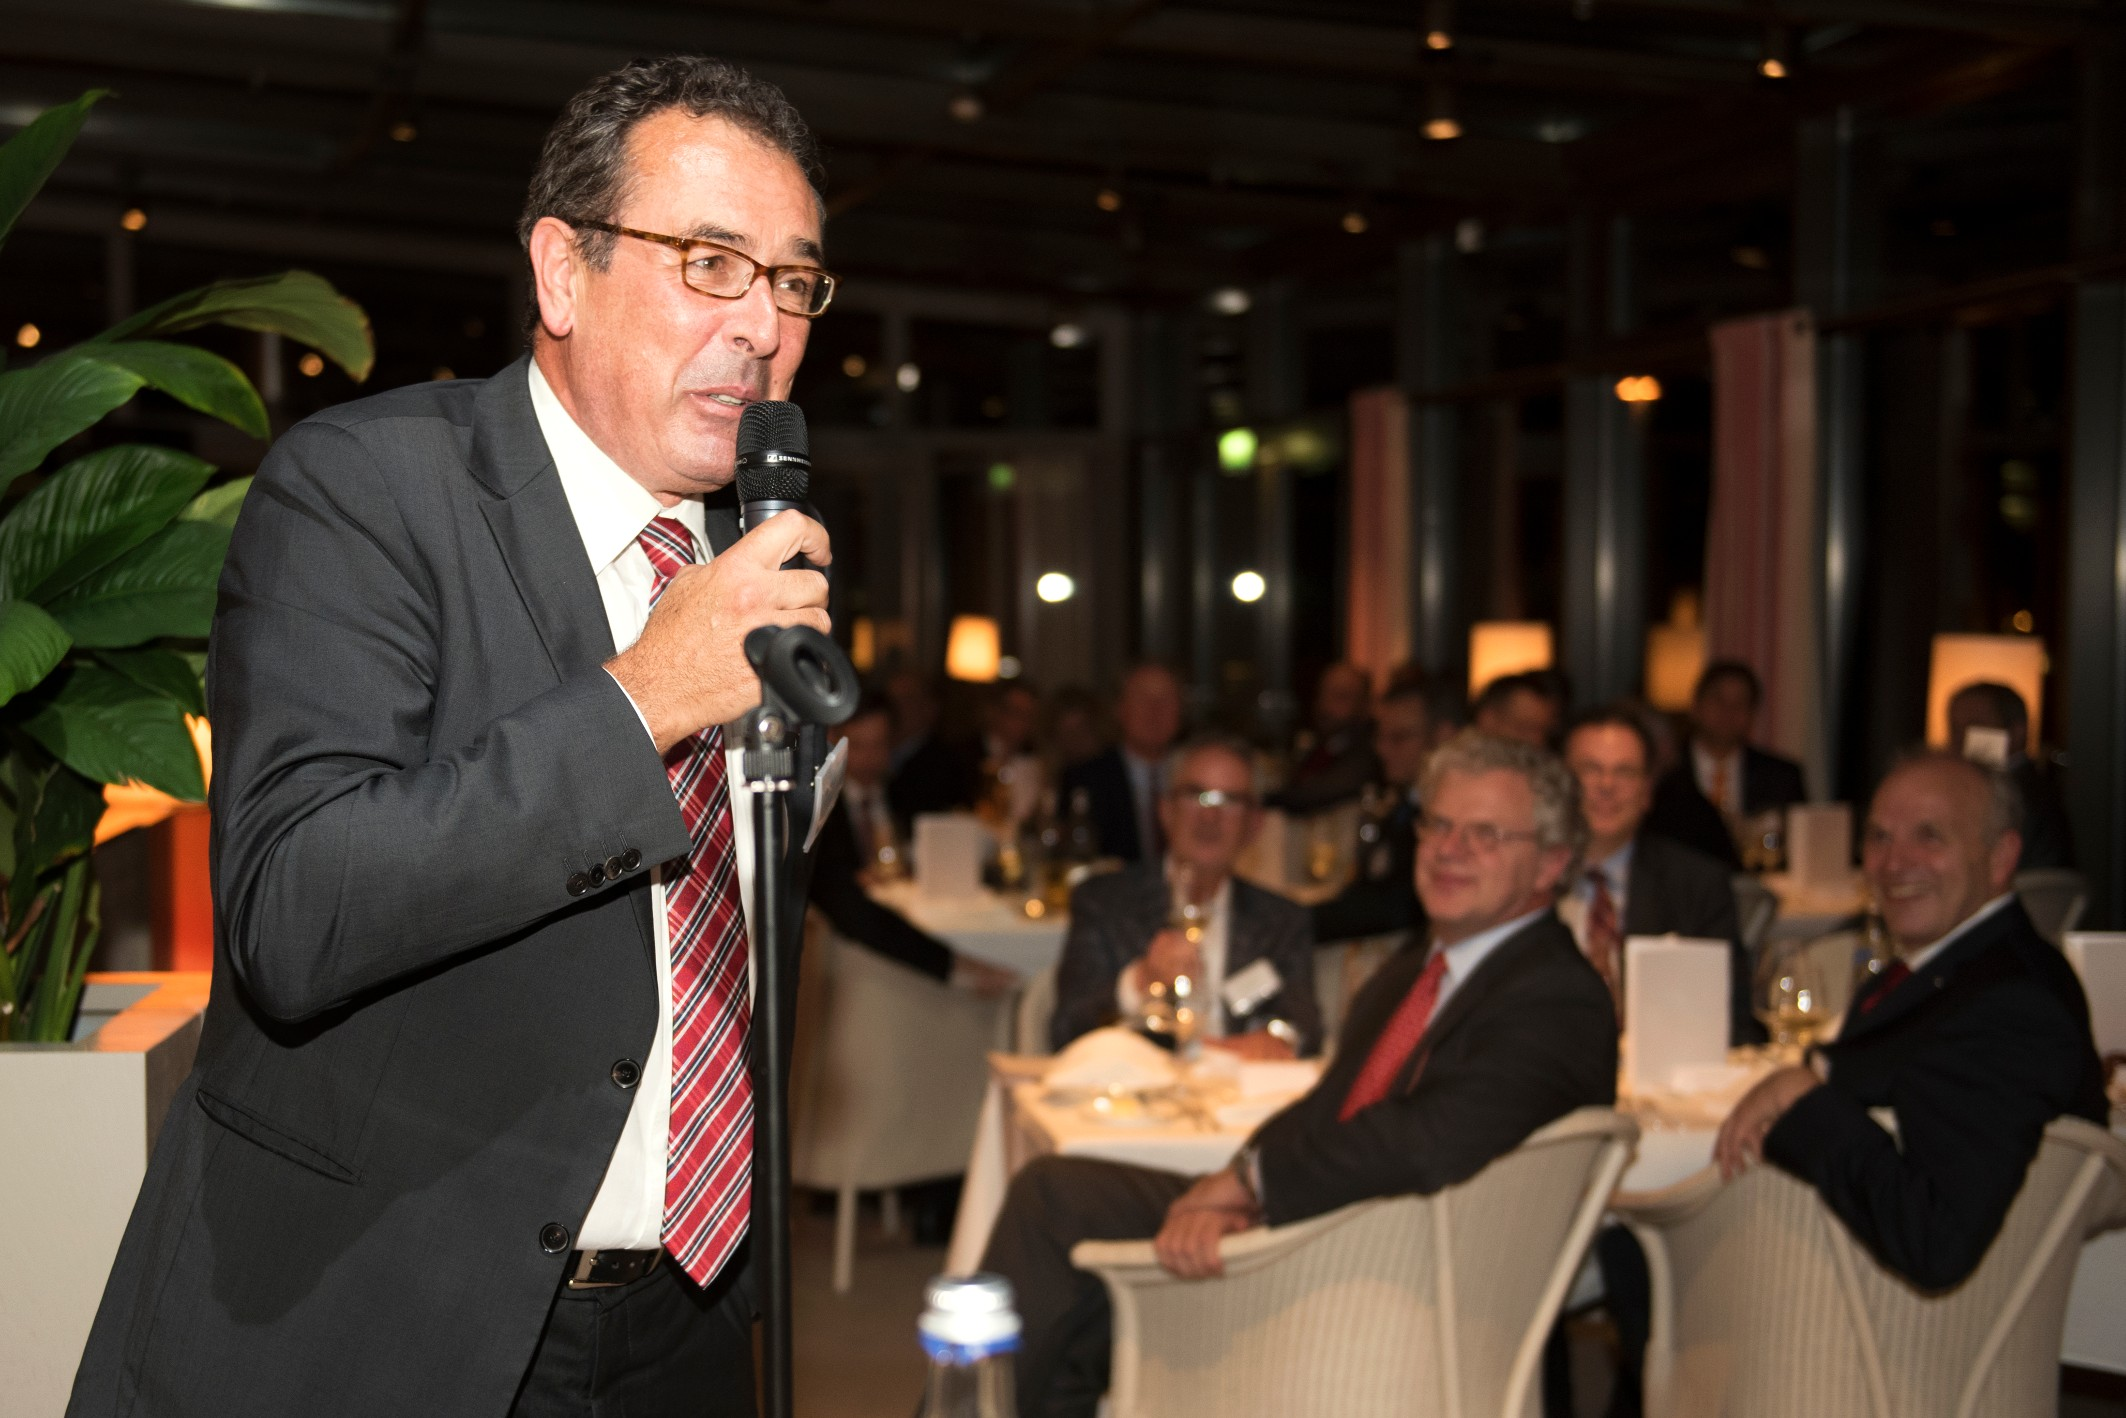 Helmut Kluger, Editor, Automobilwoche takes the stage to speak to the audience during the dinner.